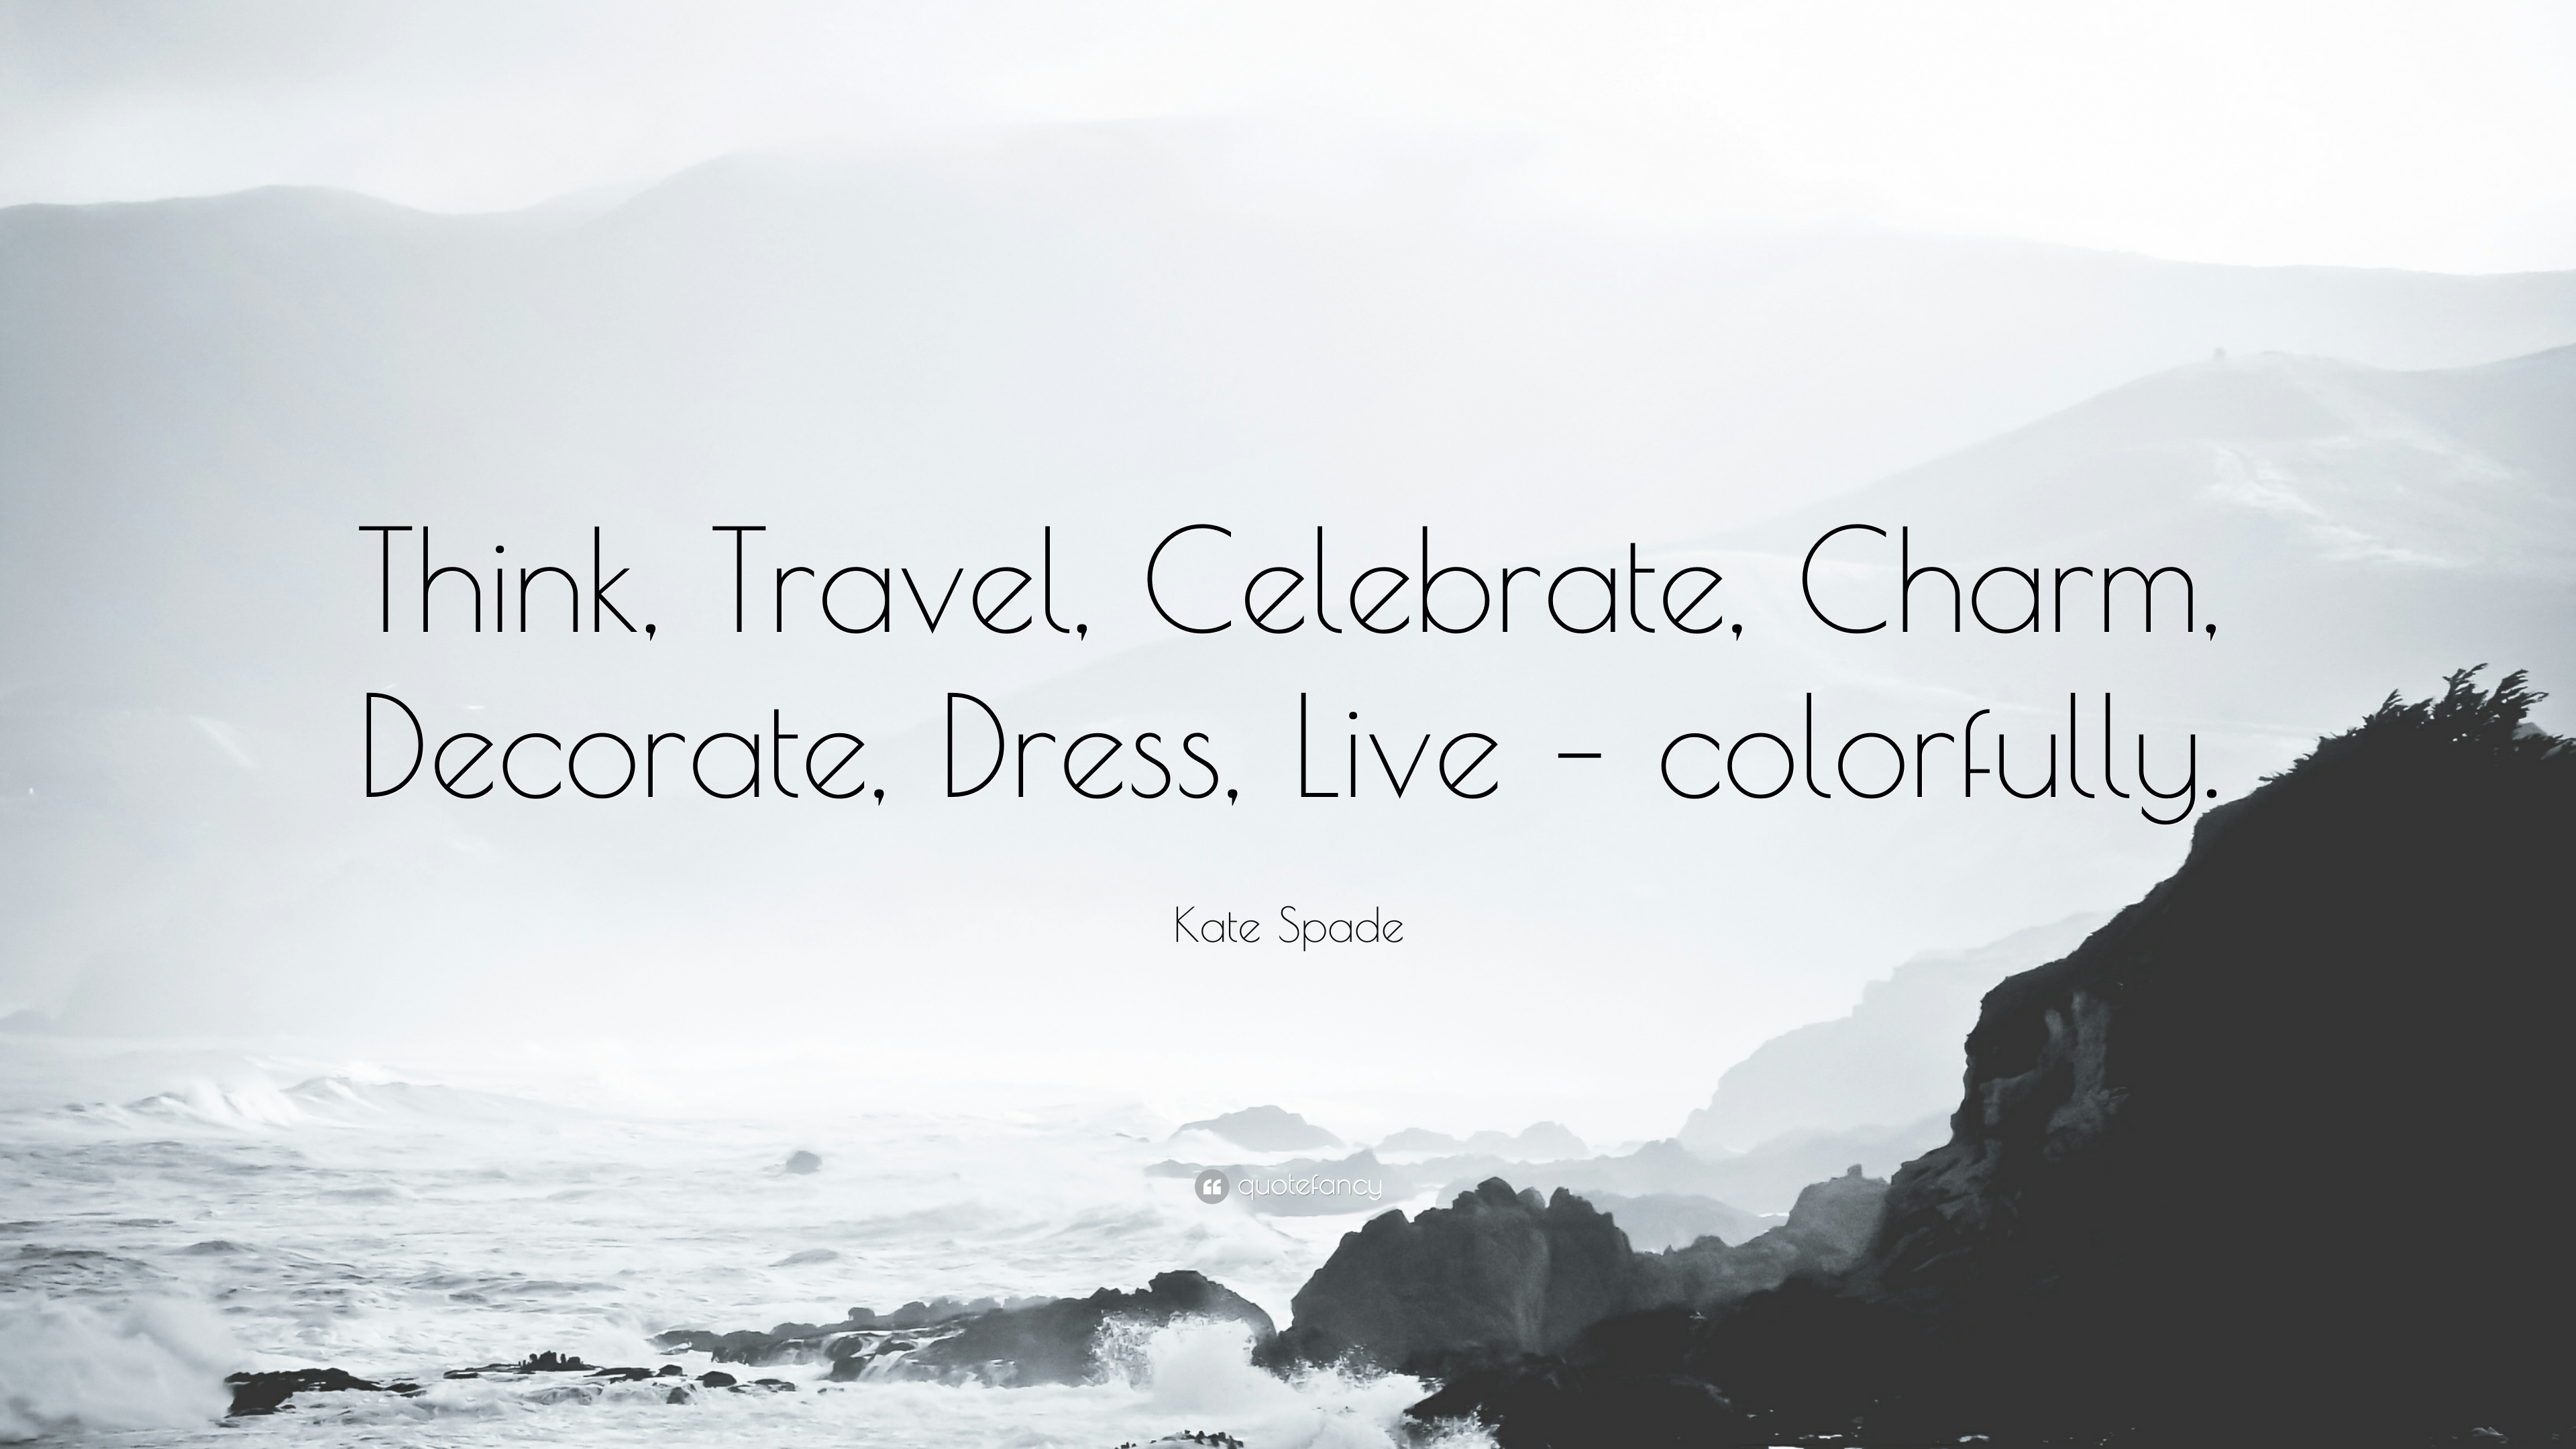 Kate Spade Quotes Kate Spade Quotes 14 Wallpapers  Quotefancy